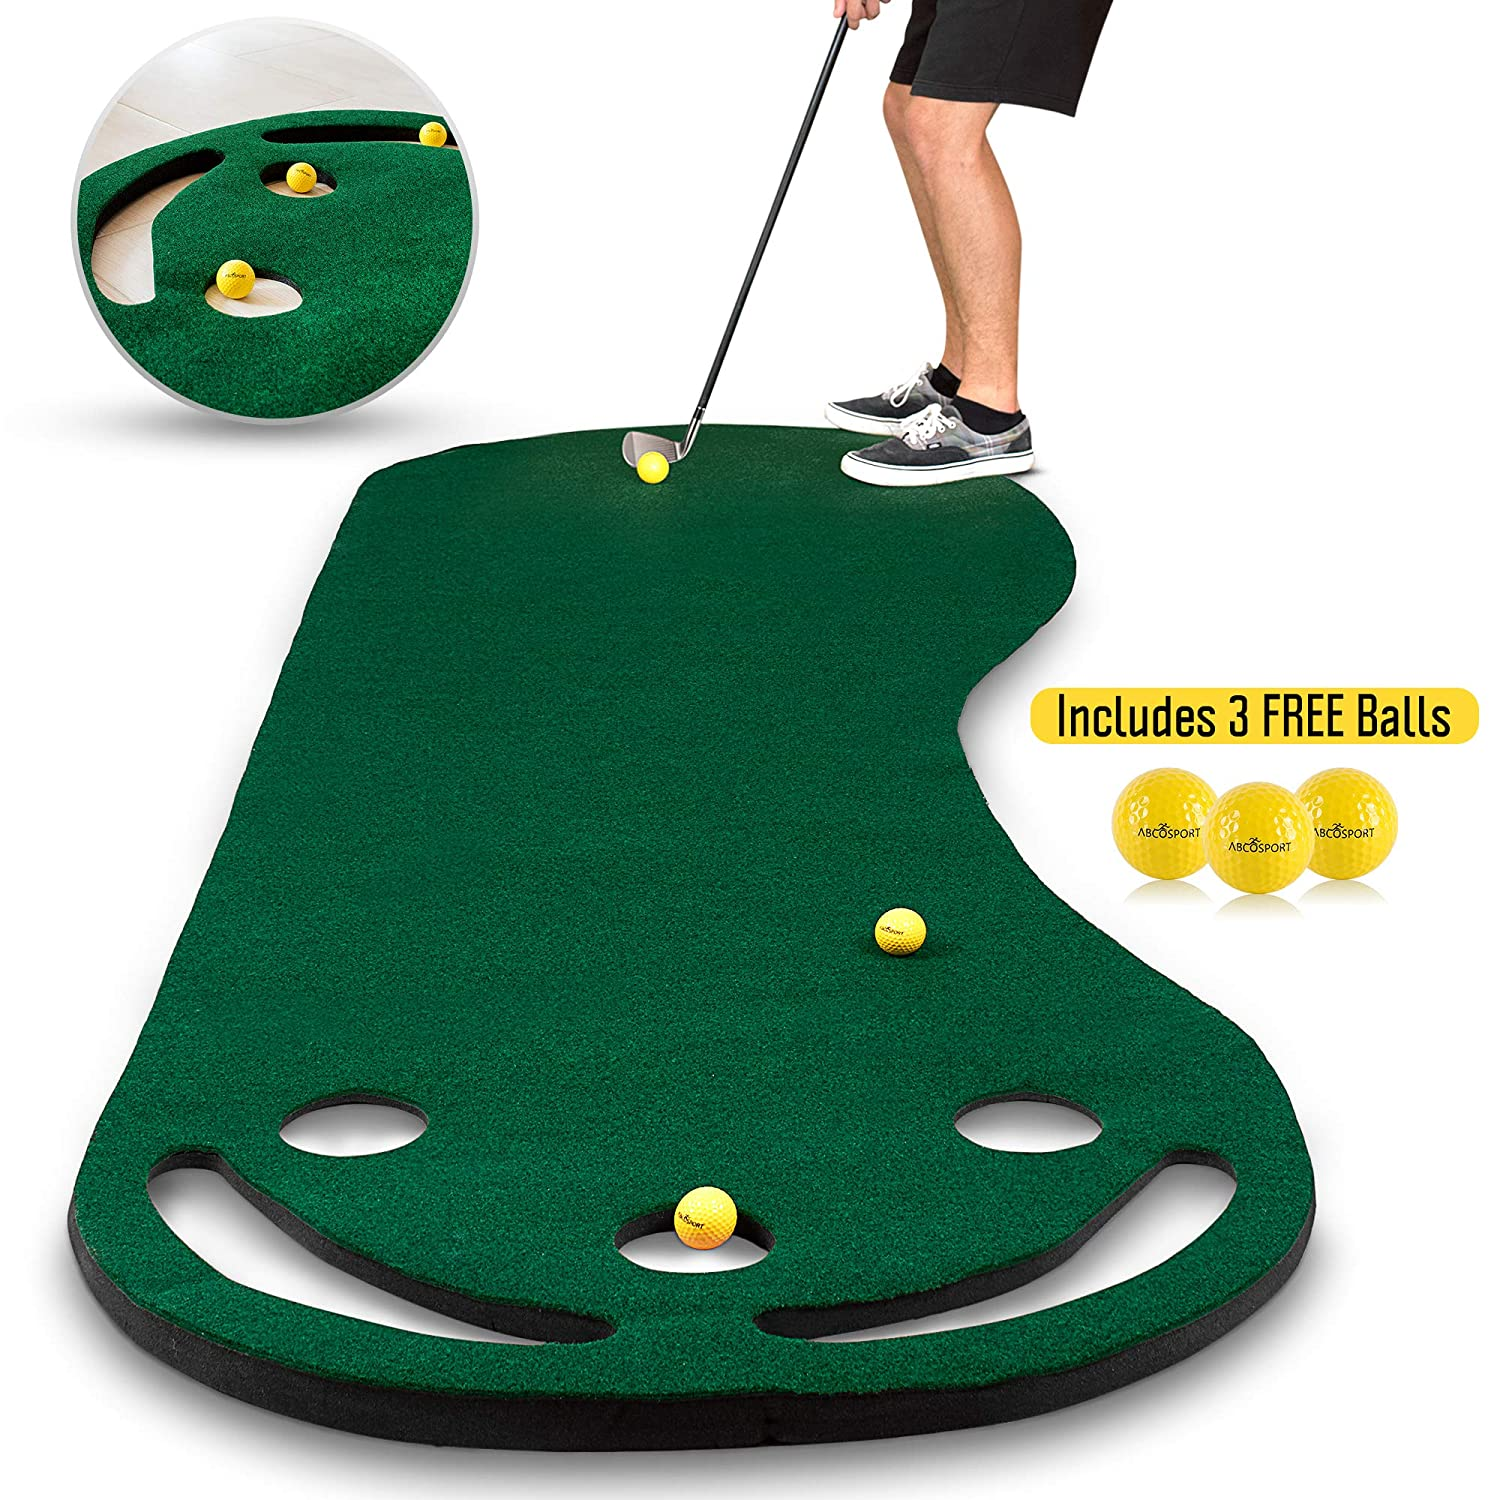 Abco Tech Golf Putting Green Grassroots Mat - 9ft x 3ft - Outdoor and Indoor Use - Perfect for Practicing and Training - Includes Free 3 Yellow Golf Balls